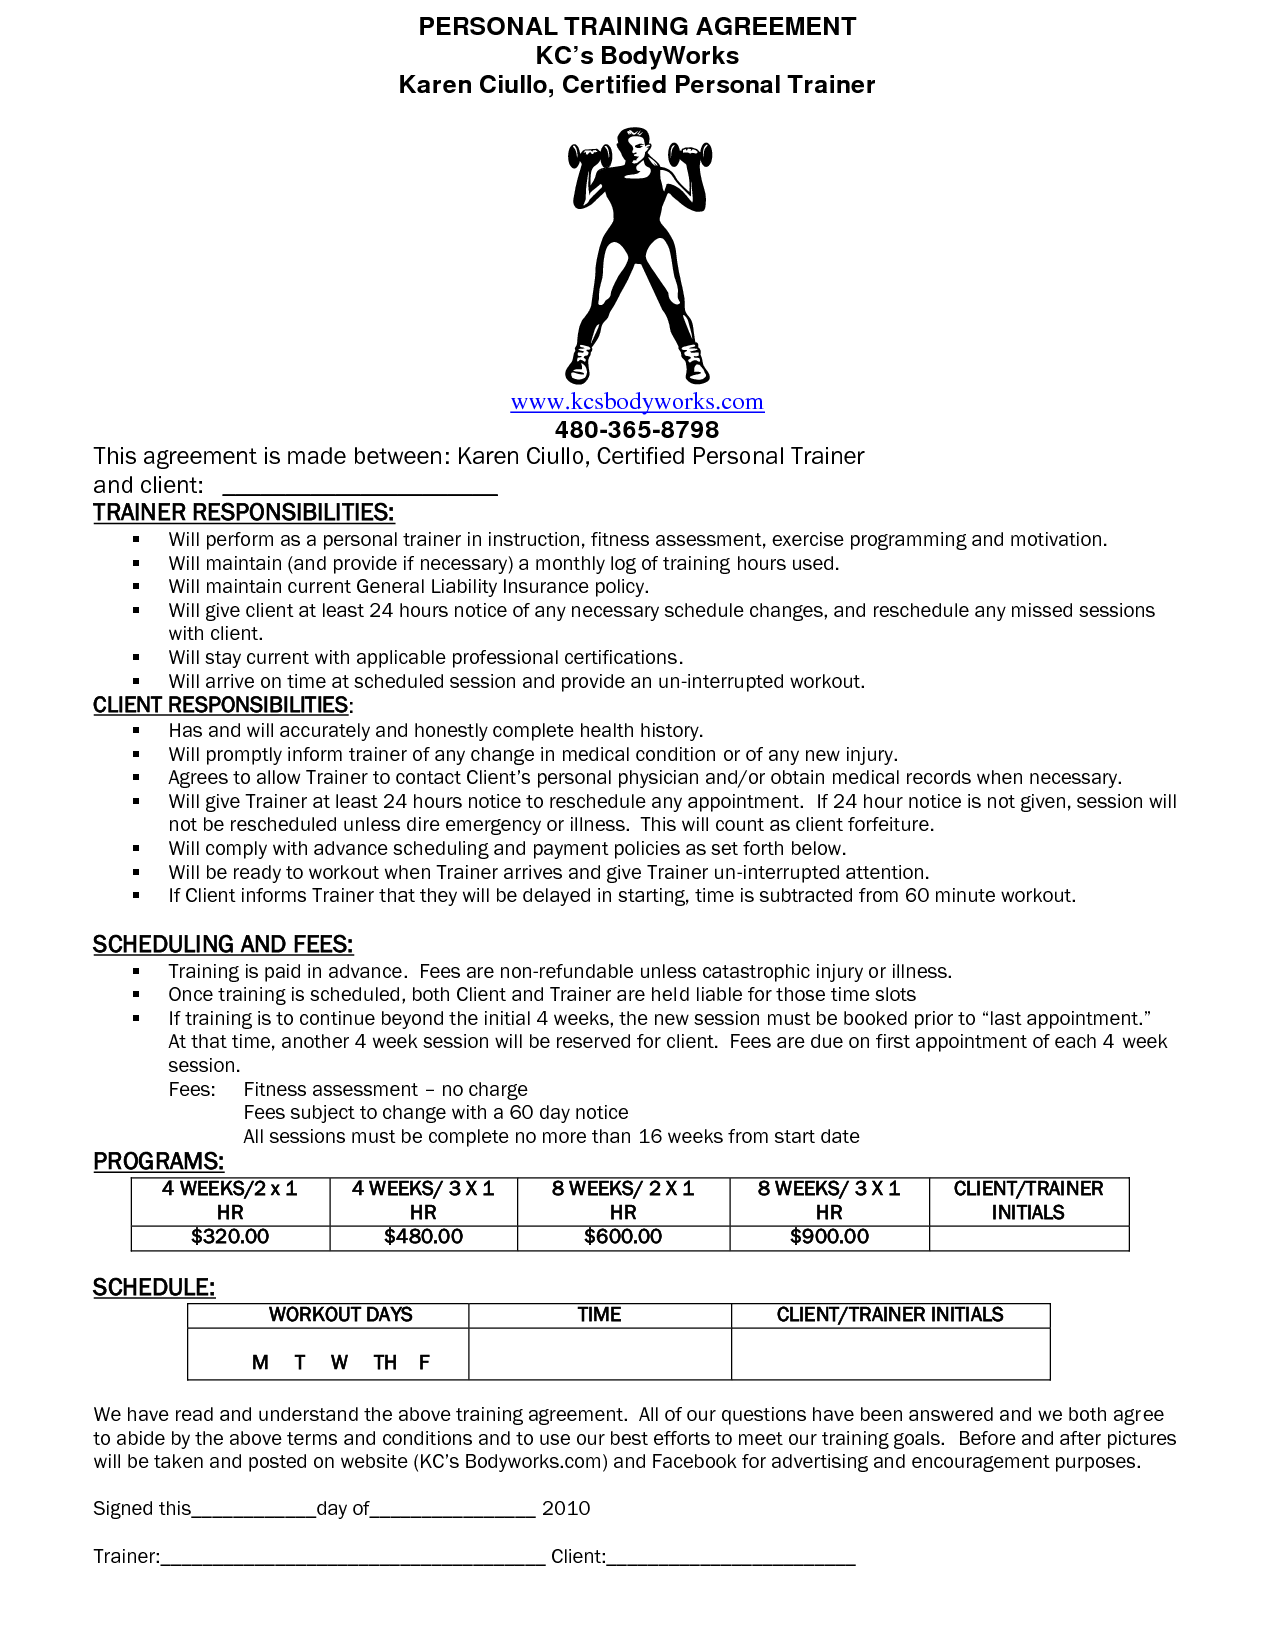 Personal Training Forms images personal training